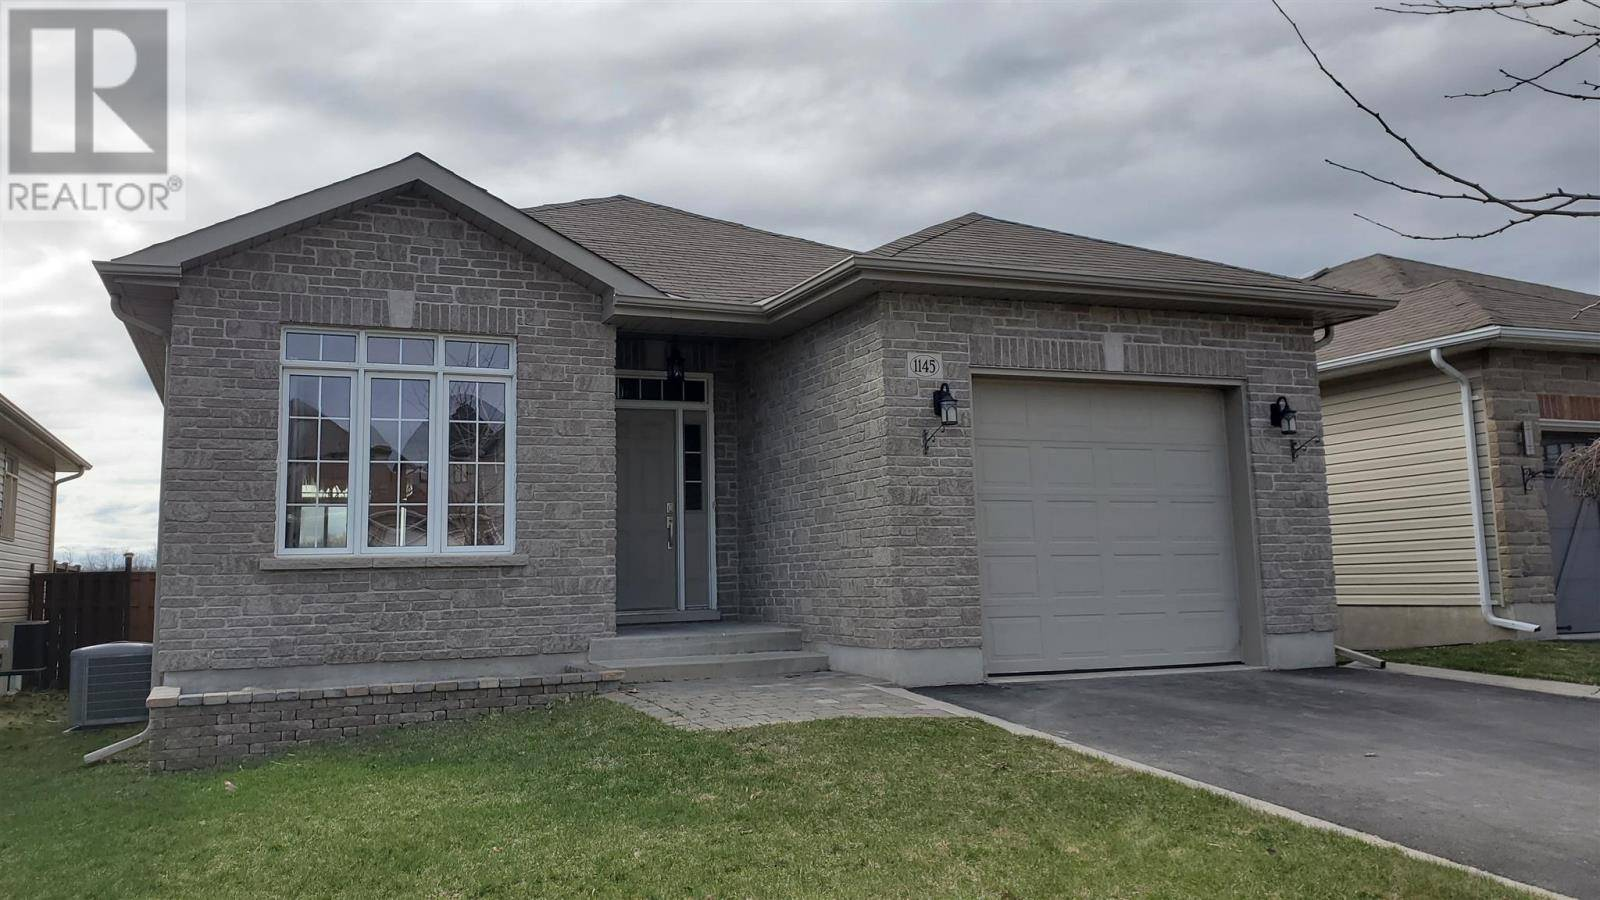 House for sale at 1145 Halifax Dr Kingston Ontario - MLS: K20001834